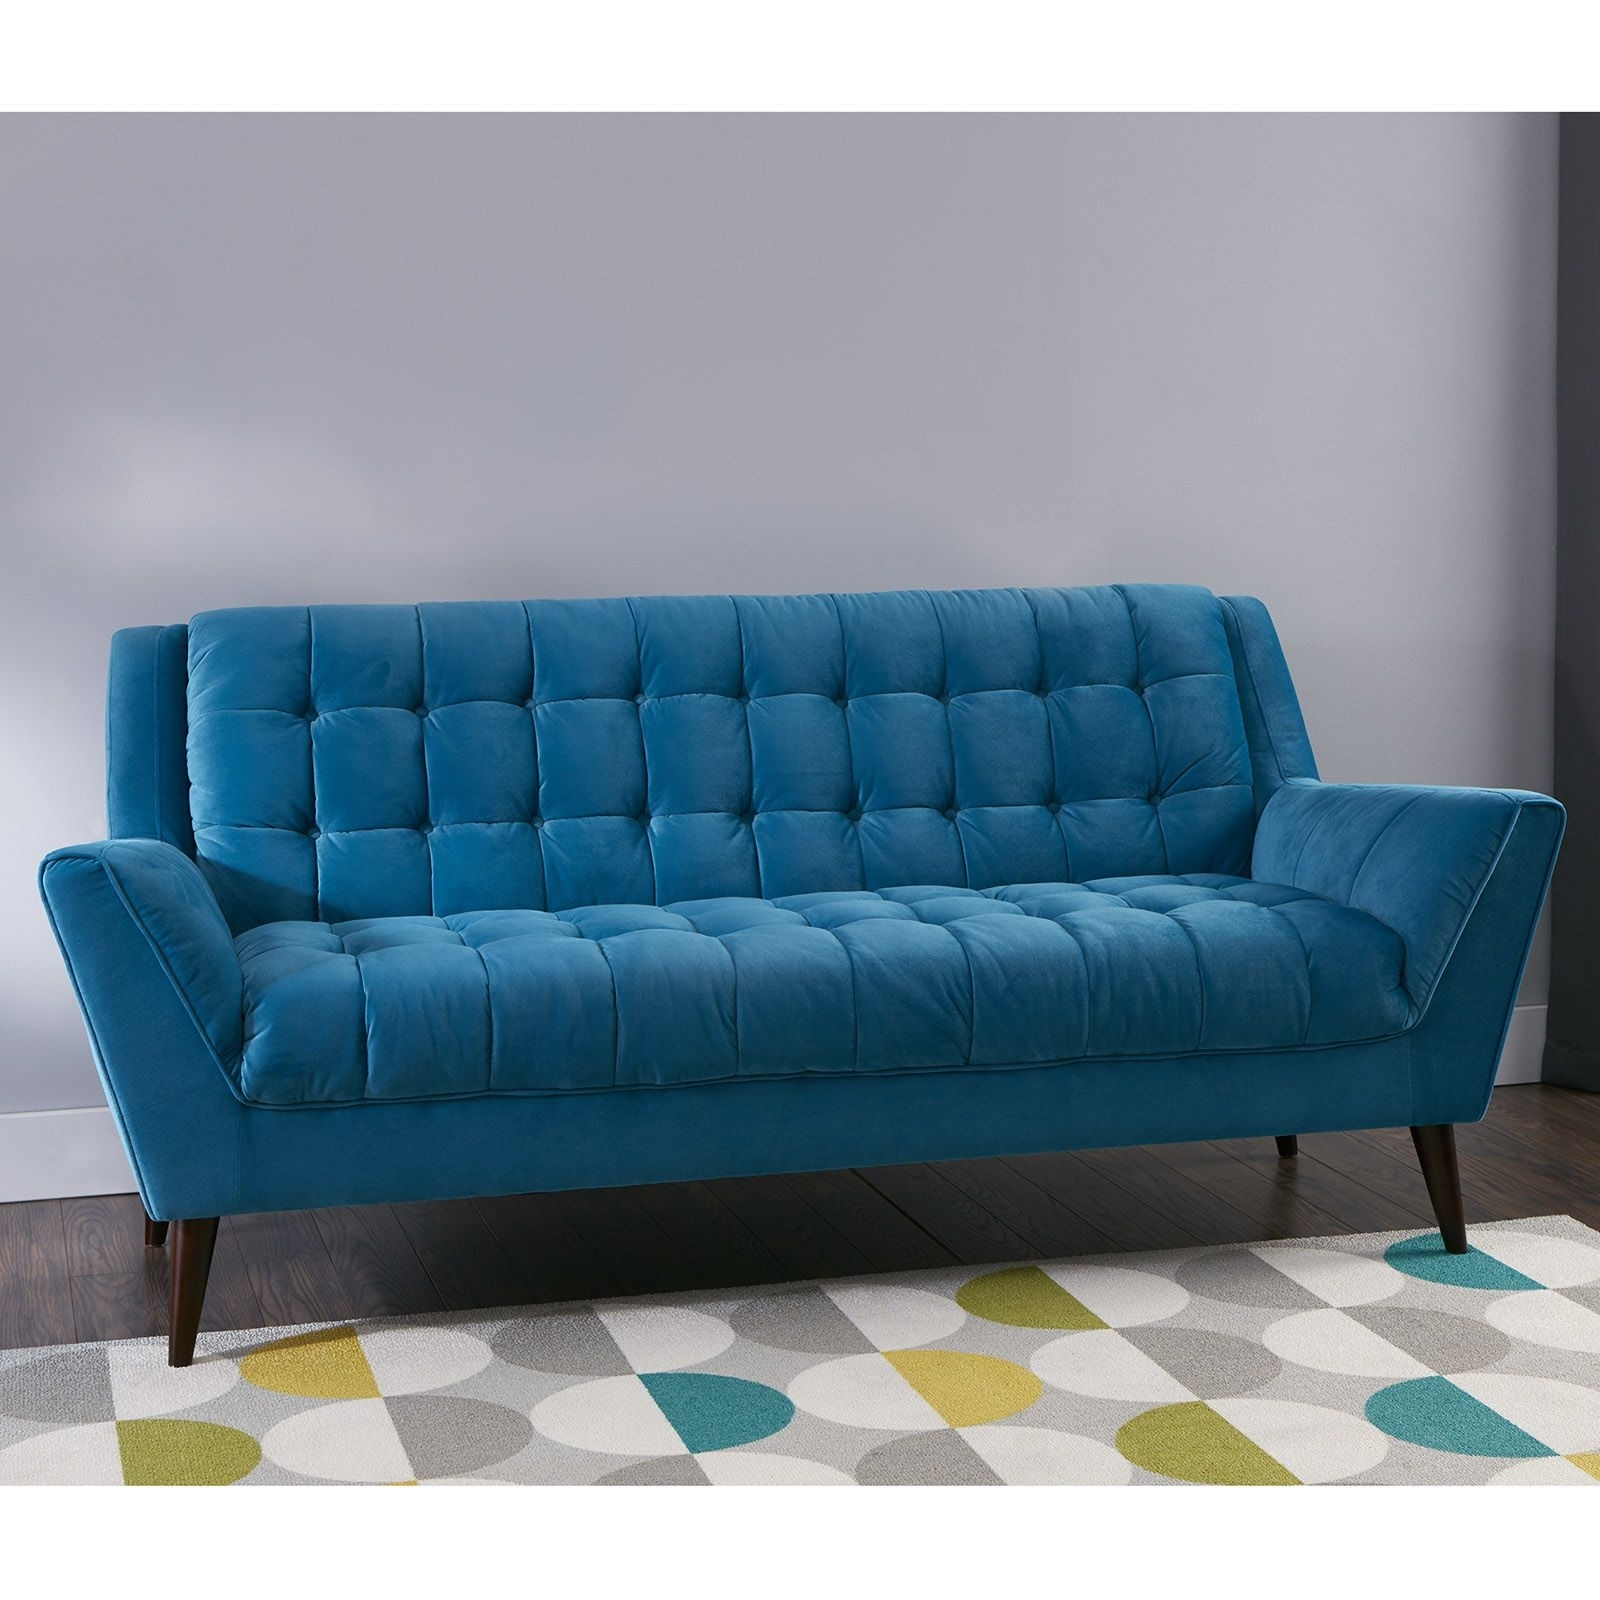 Cheap Retro Sofas Within Most Current Unbelievable Braxton Midcentury Modern Retro Sofa Teal At Home Of (View 7 of 15)